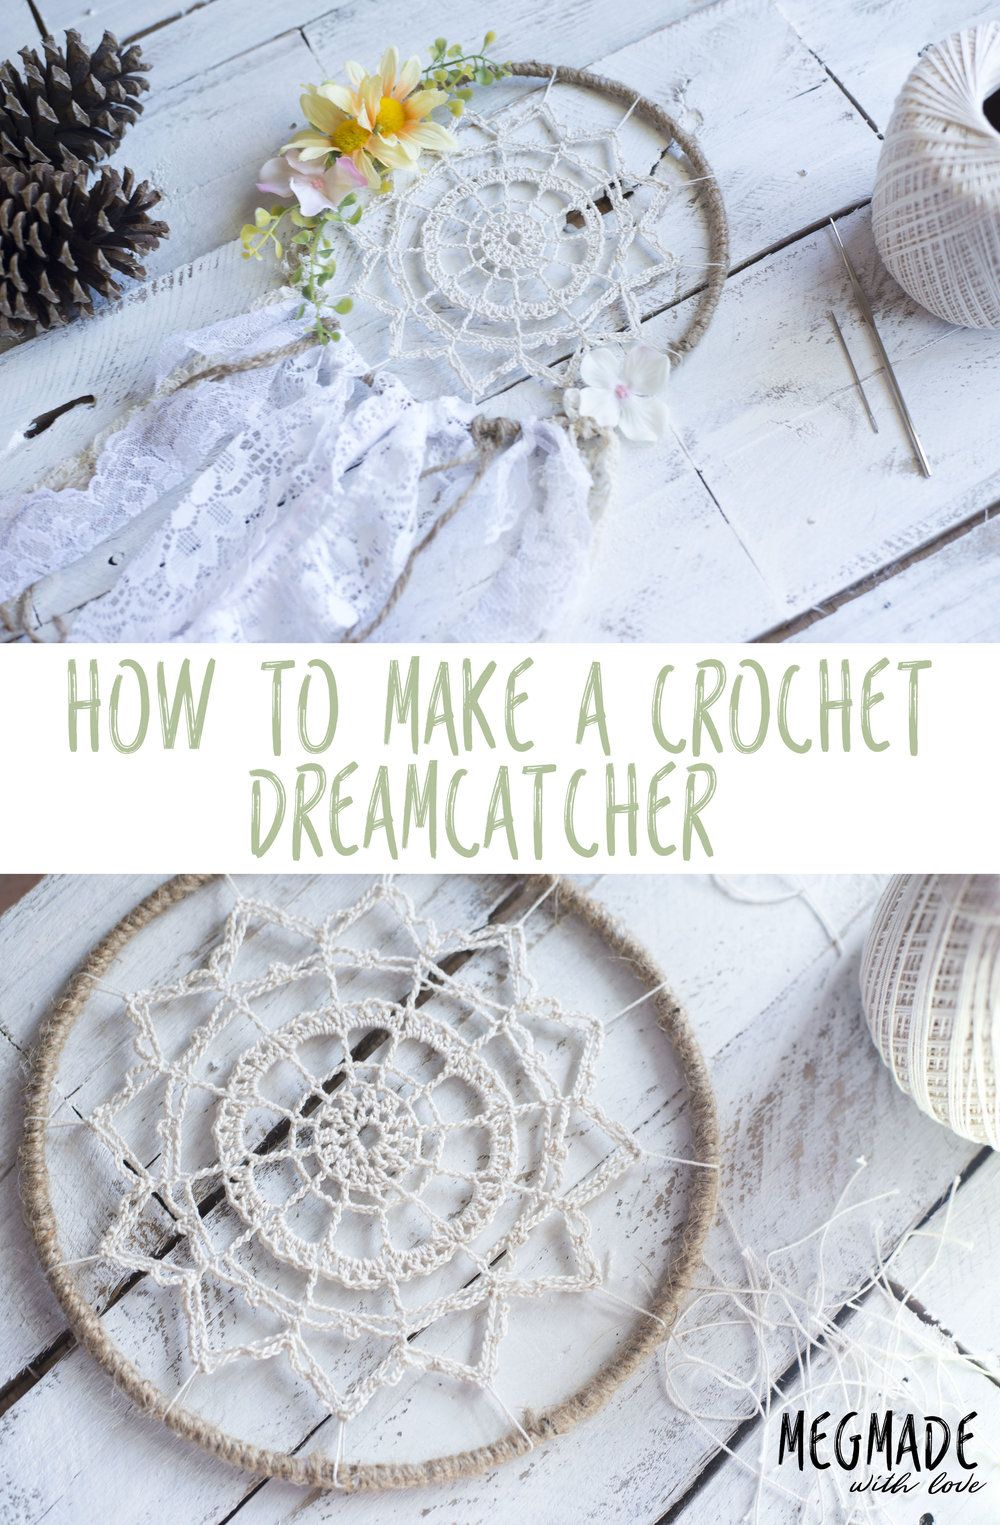 Crochet Dreamcatchers Free Patterns Crochet Dreamy Dreamcatcher Pattern Red Heart Patterns From